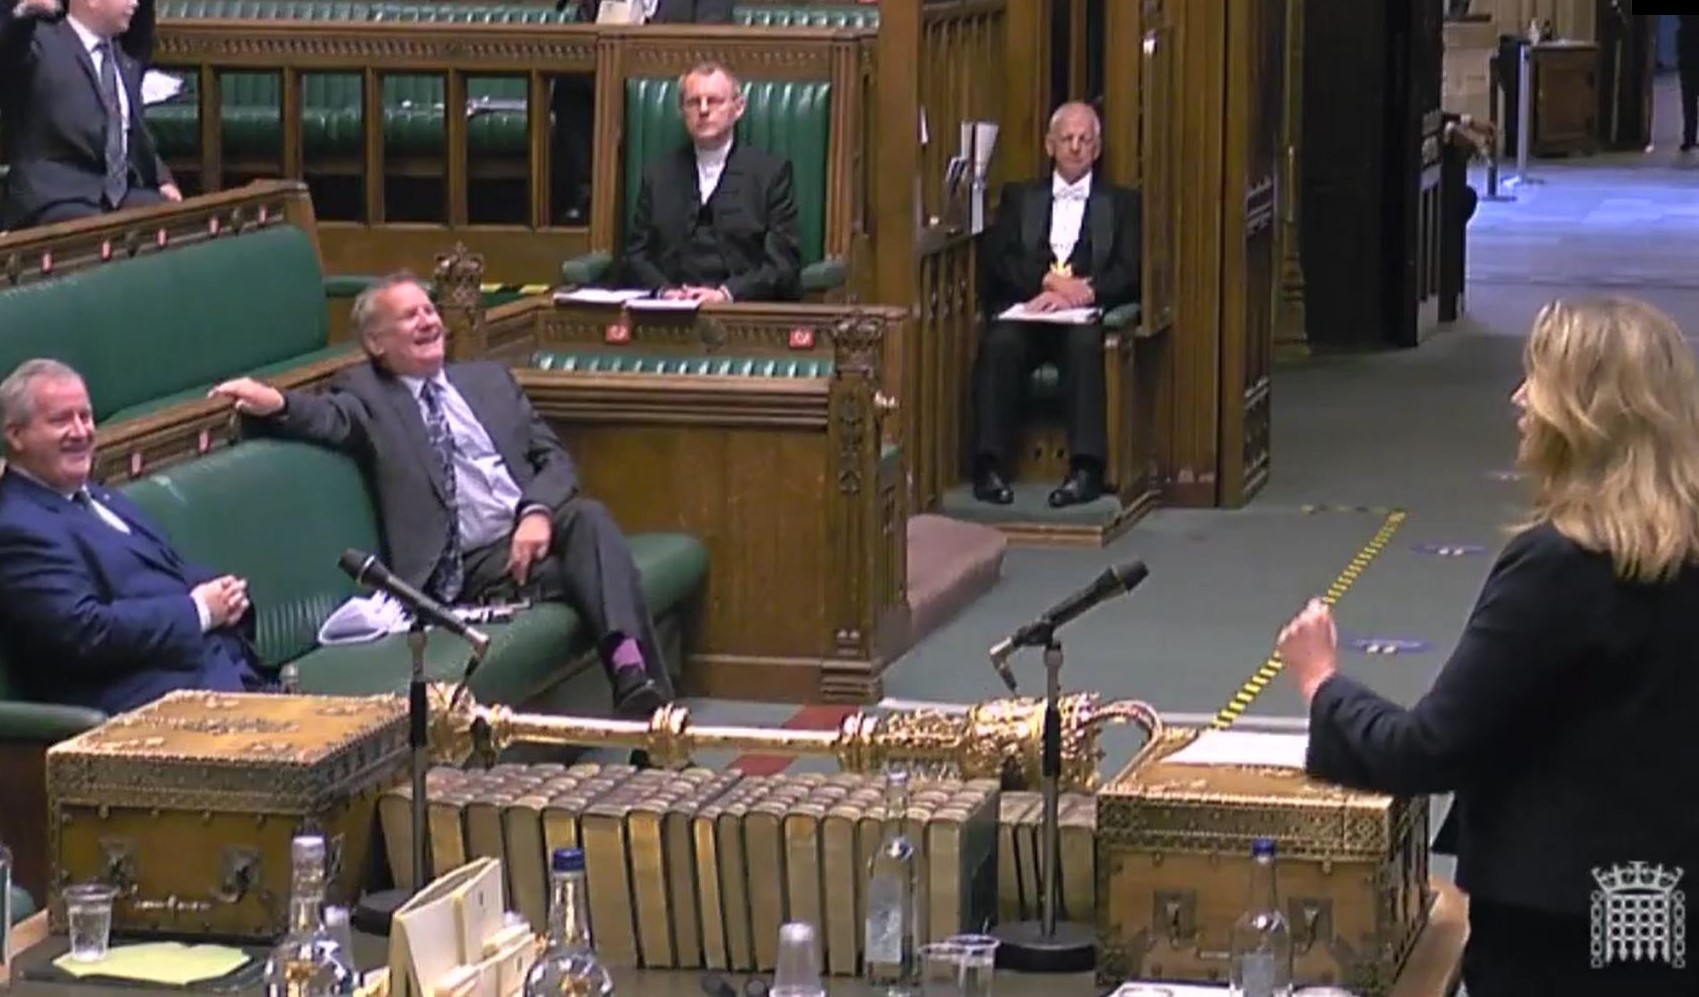 WATCH: Tory minister has SNP MPs in stitches with outrageous Brexit claim